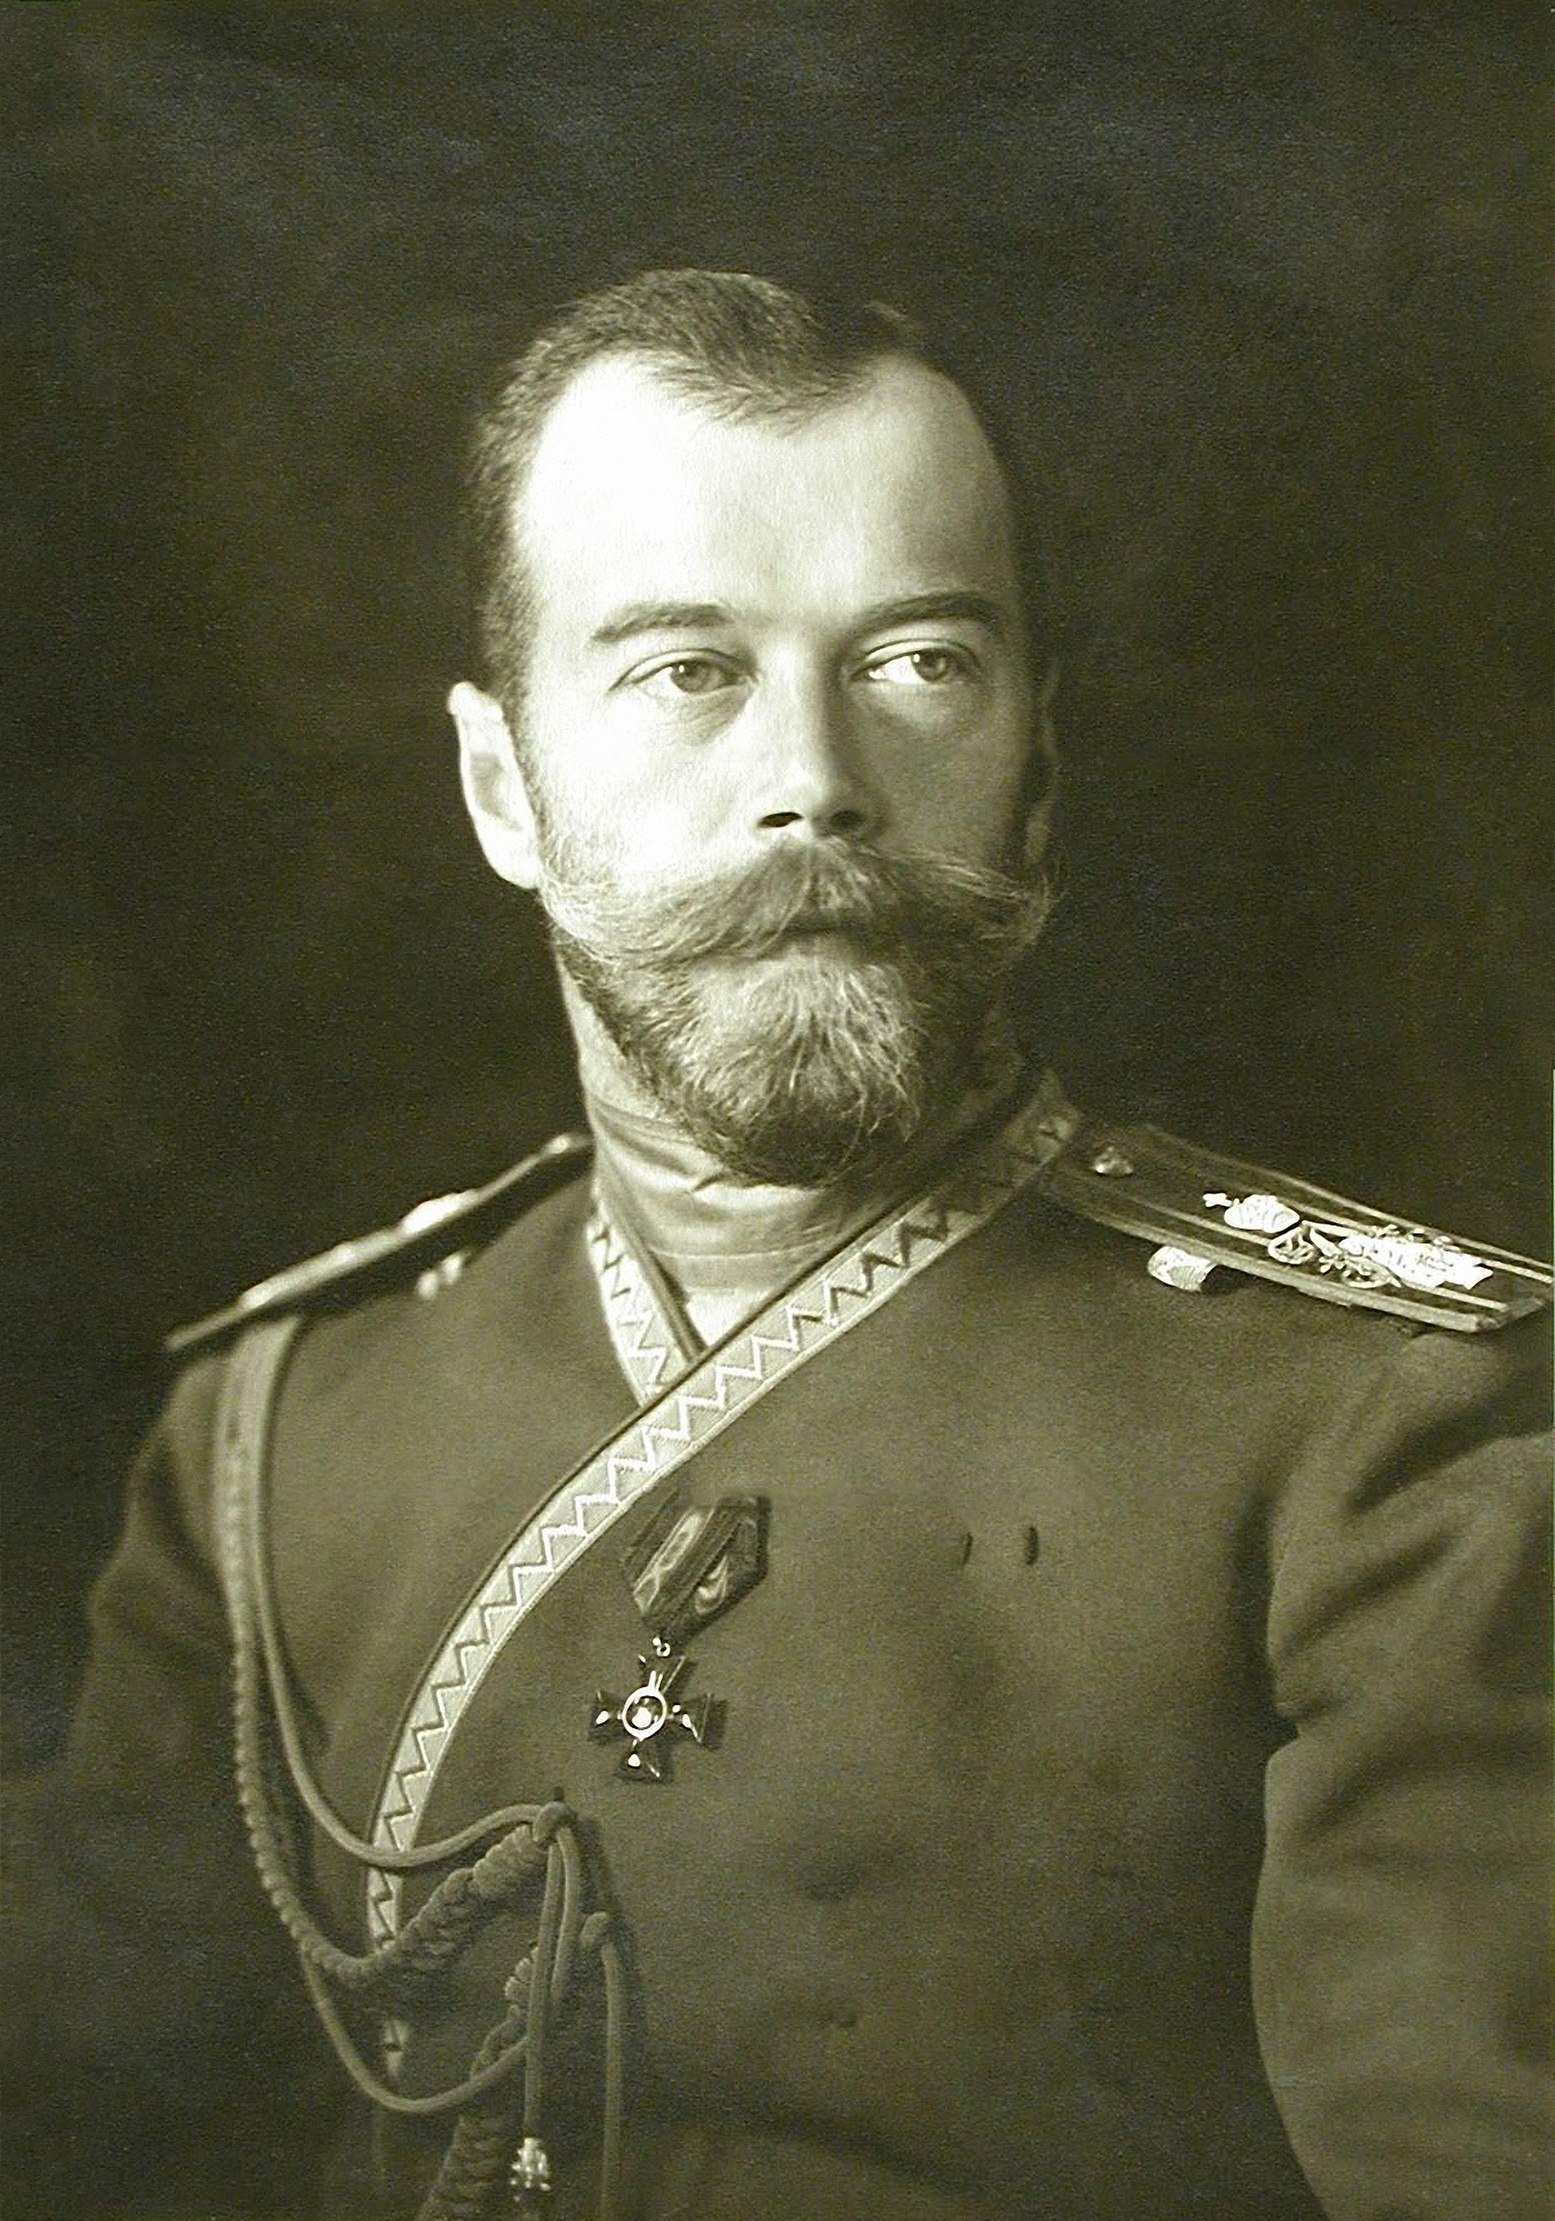 Tsar Nicholas II - The complete information and online sale